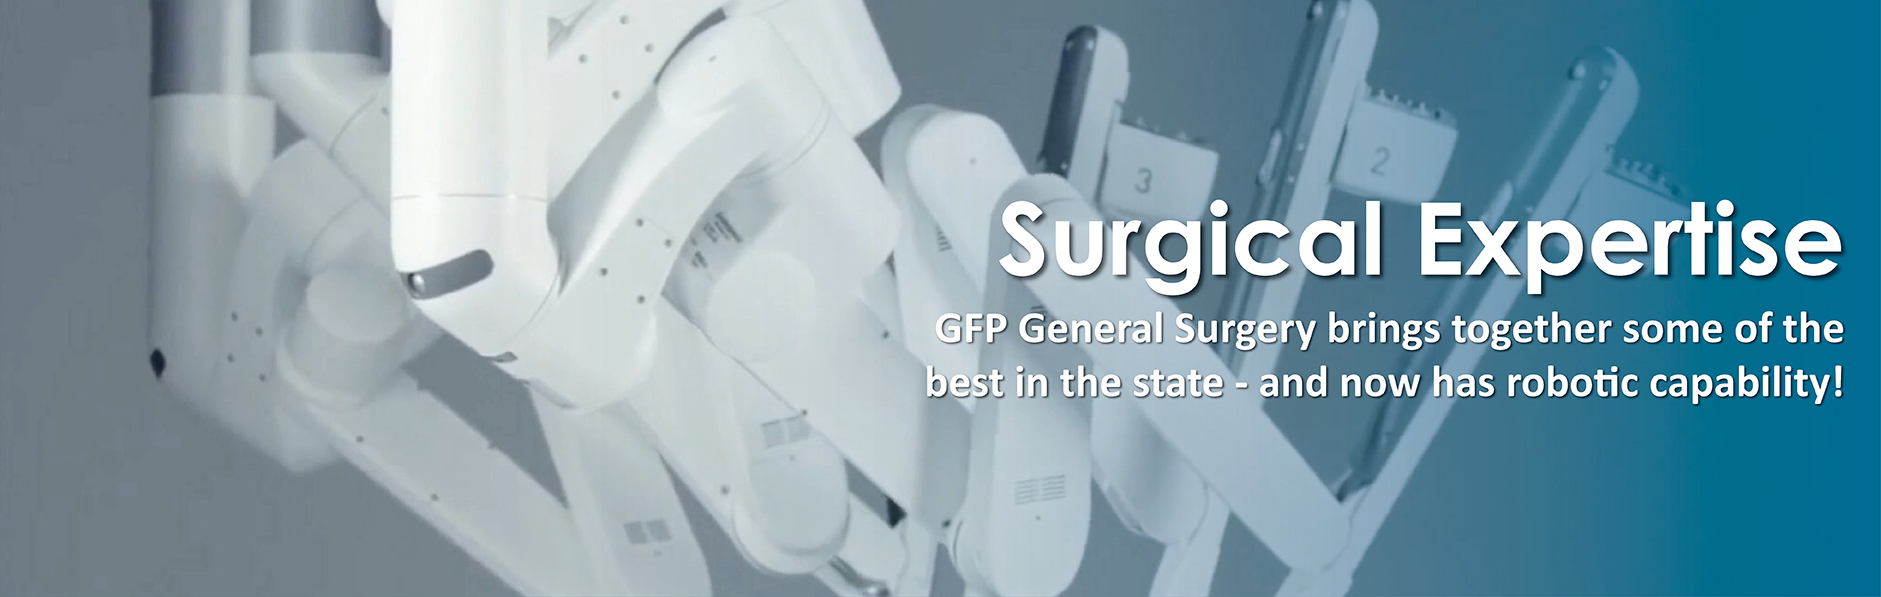 Surgical Expertise at GFP